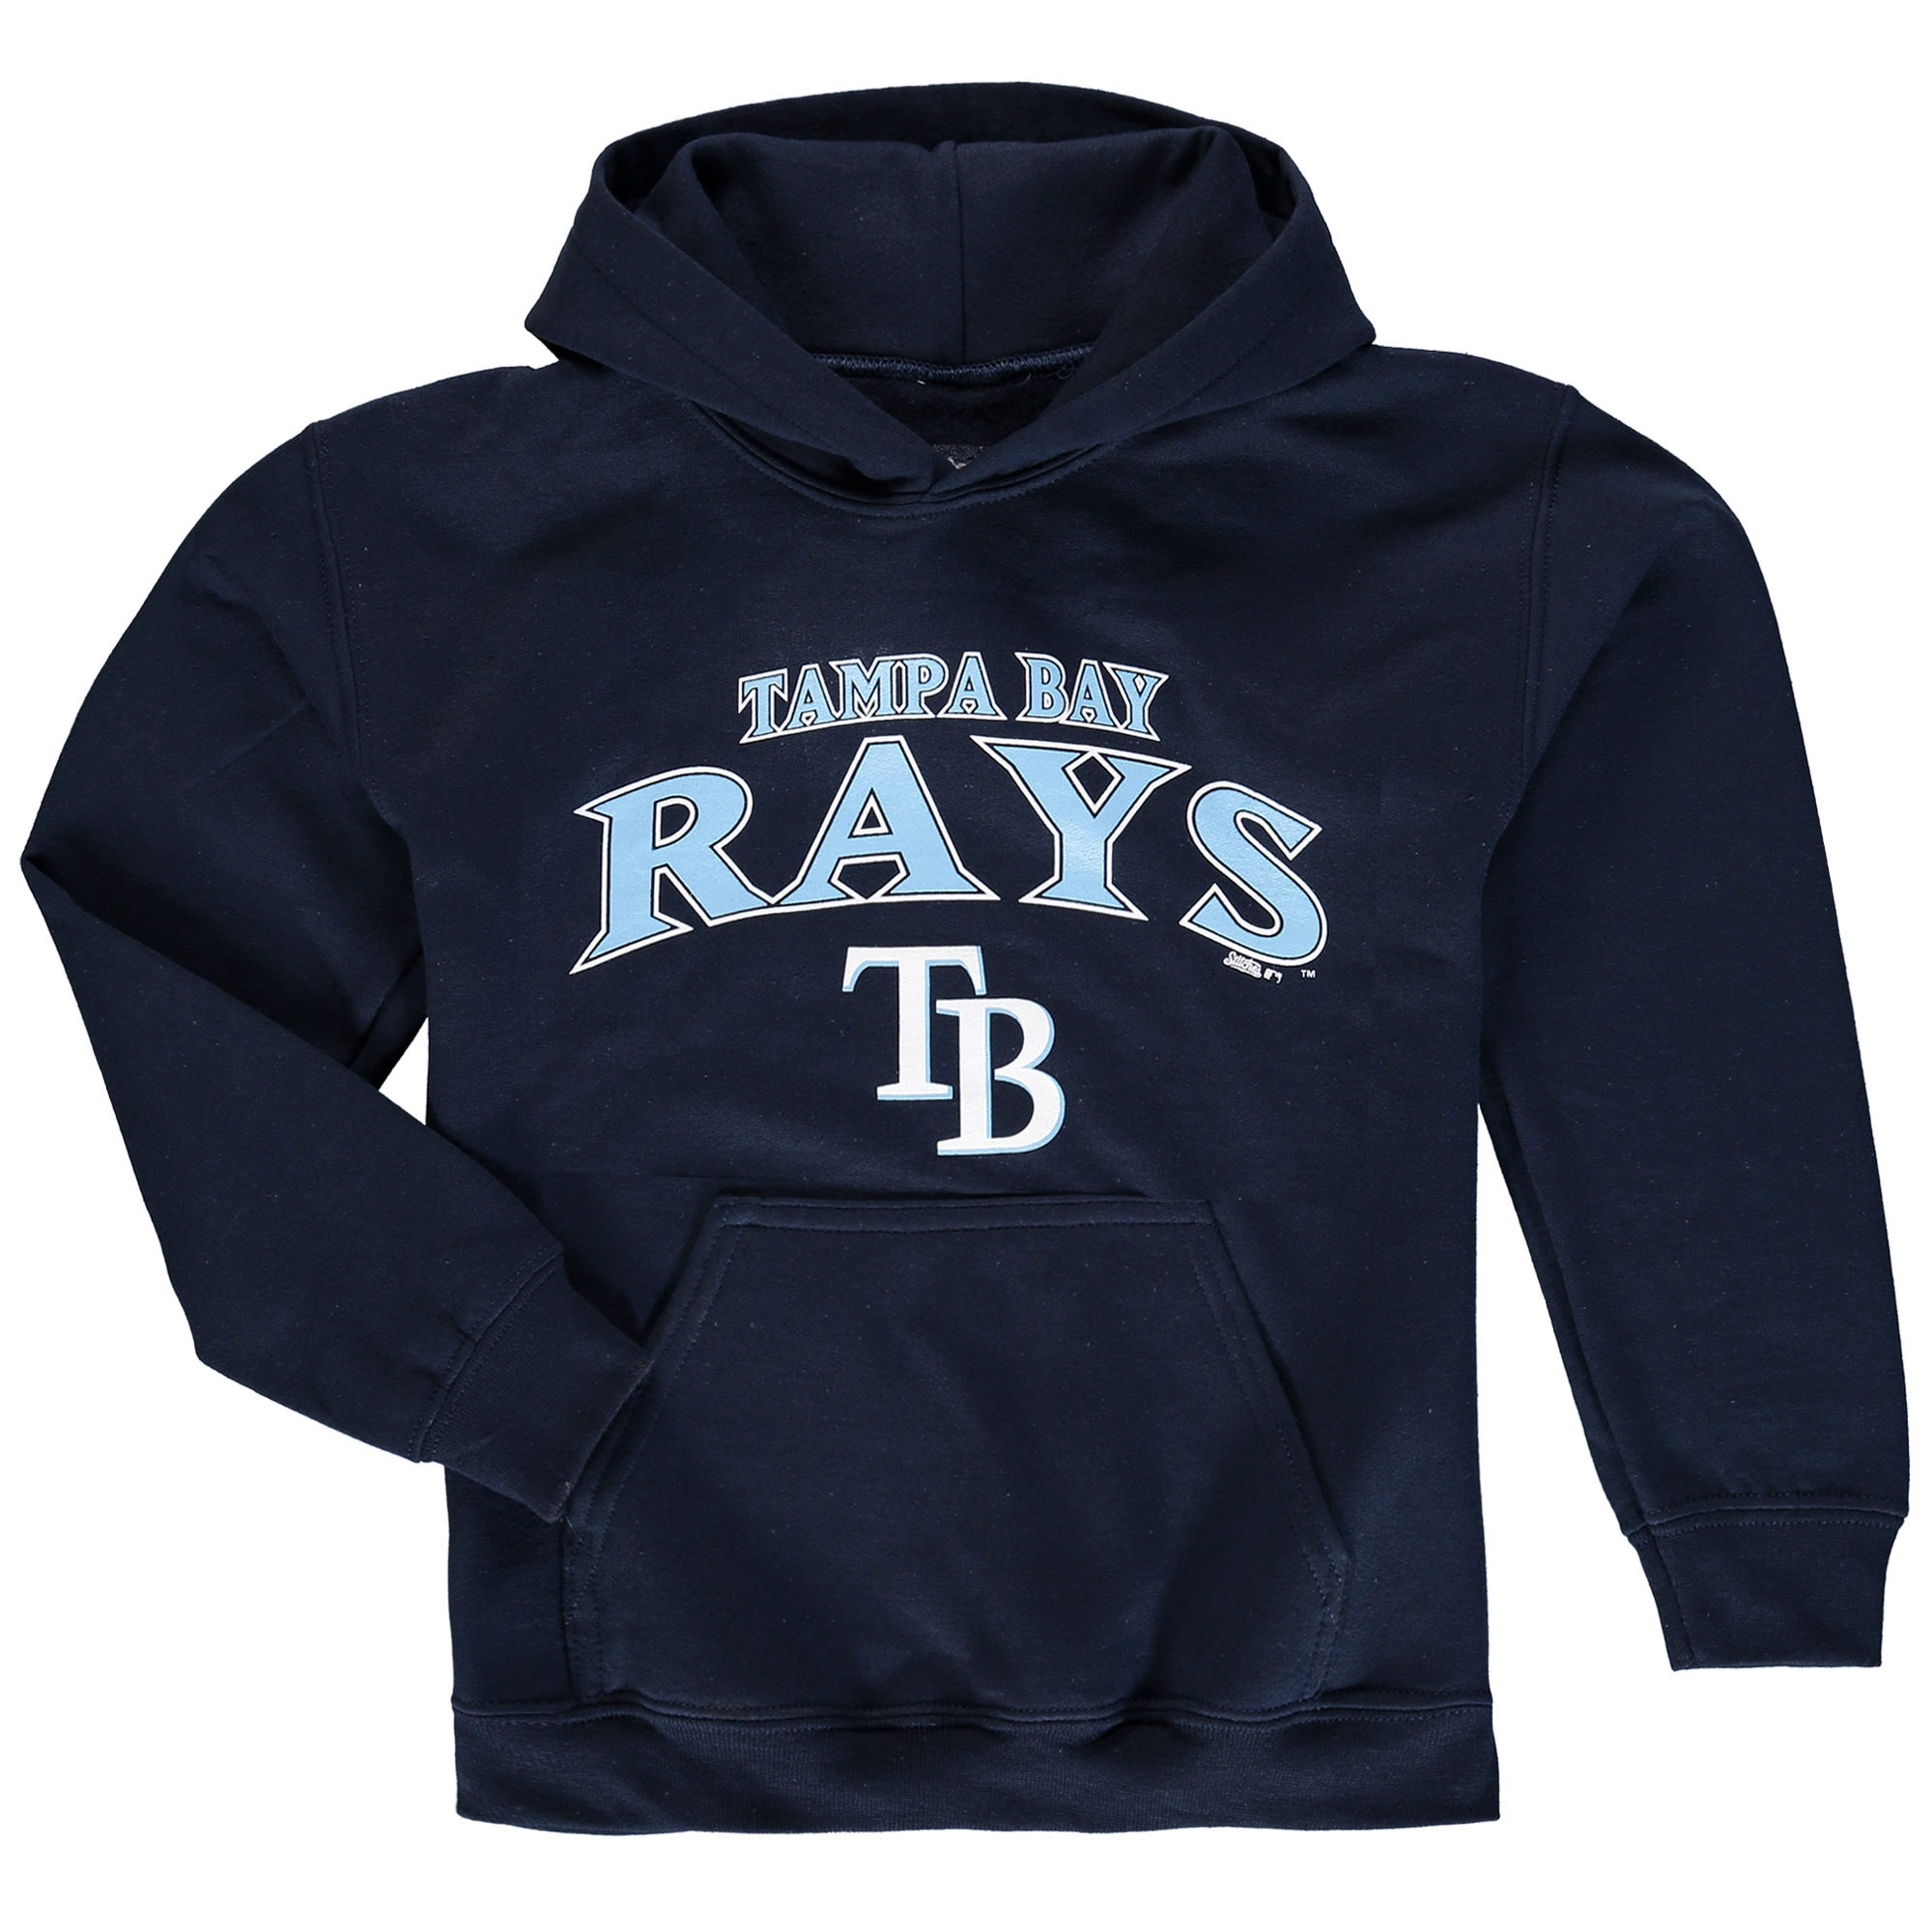 Tampa Bay Rays Stitches Youth Team Fleece Pullover Hoodie - Navy